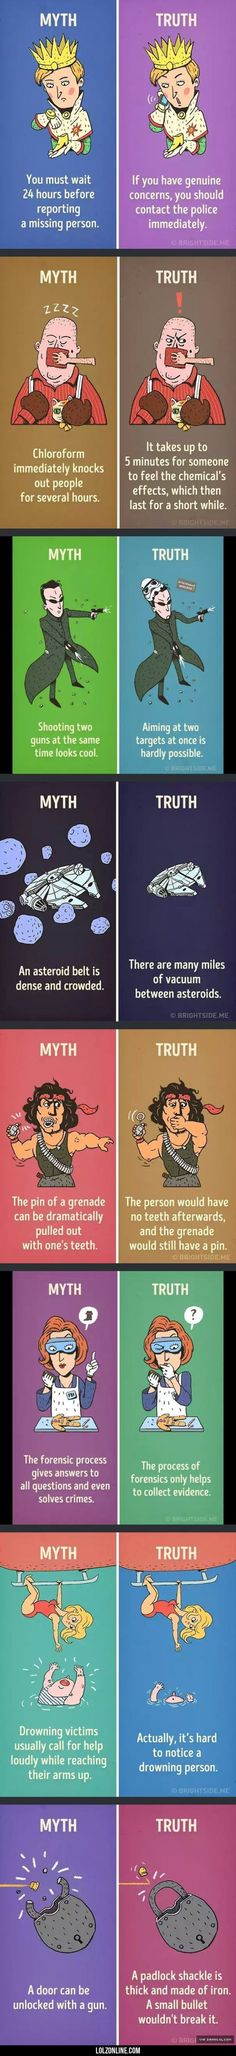 Myths You Believed Were True But Actually Werent